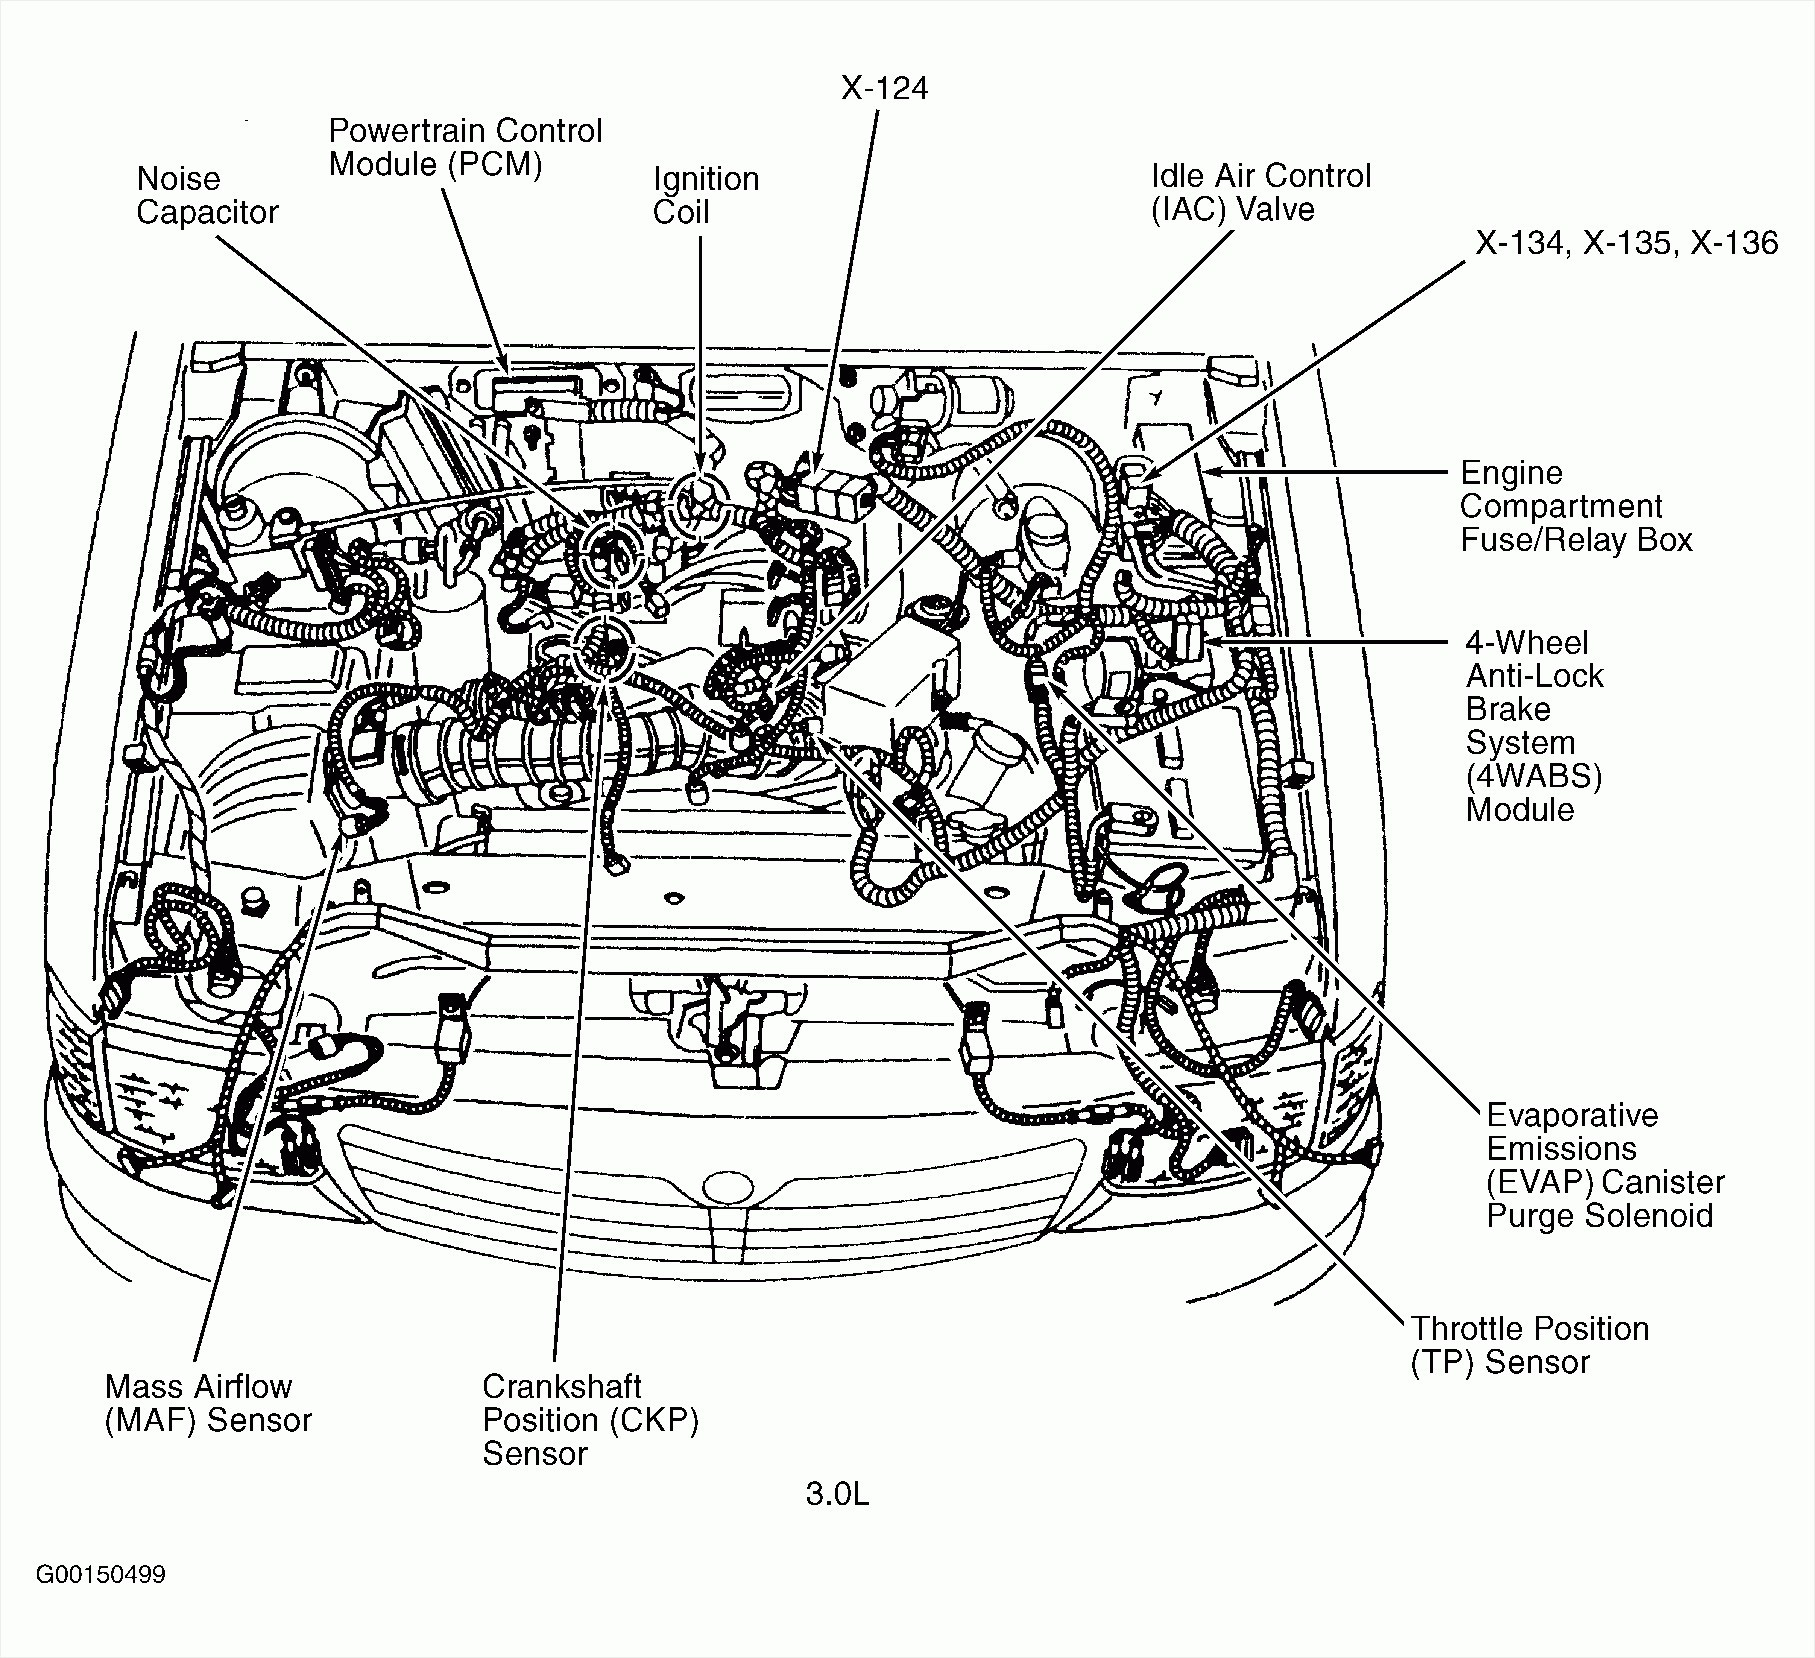 Ford 2 9 V6 Engine Diagram Car Fuse Box Wiring Liter Images Gallery Mazda 626 Schematic Wire Center U2022 Rh Sischool Co 2005 Escape